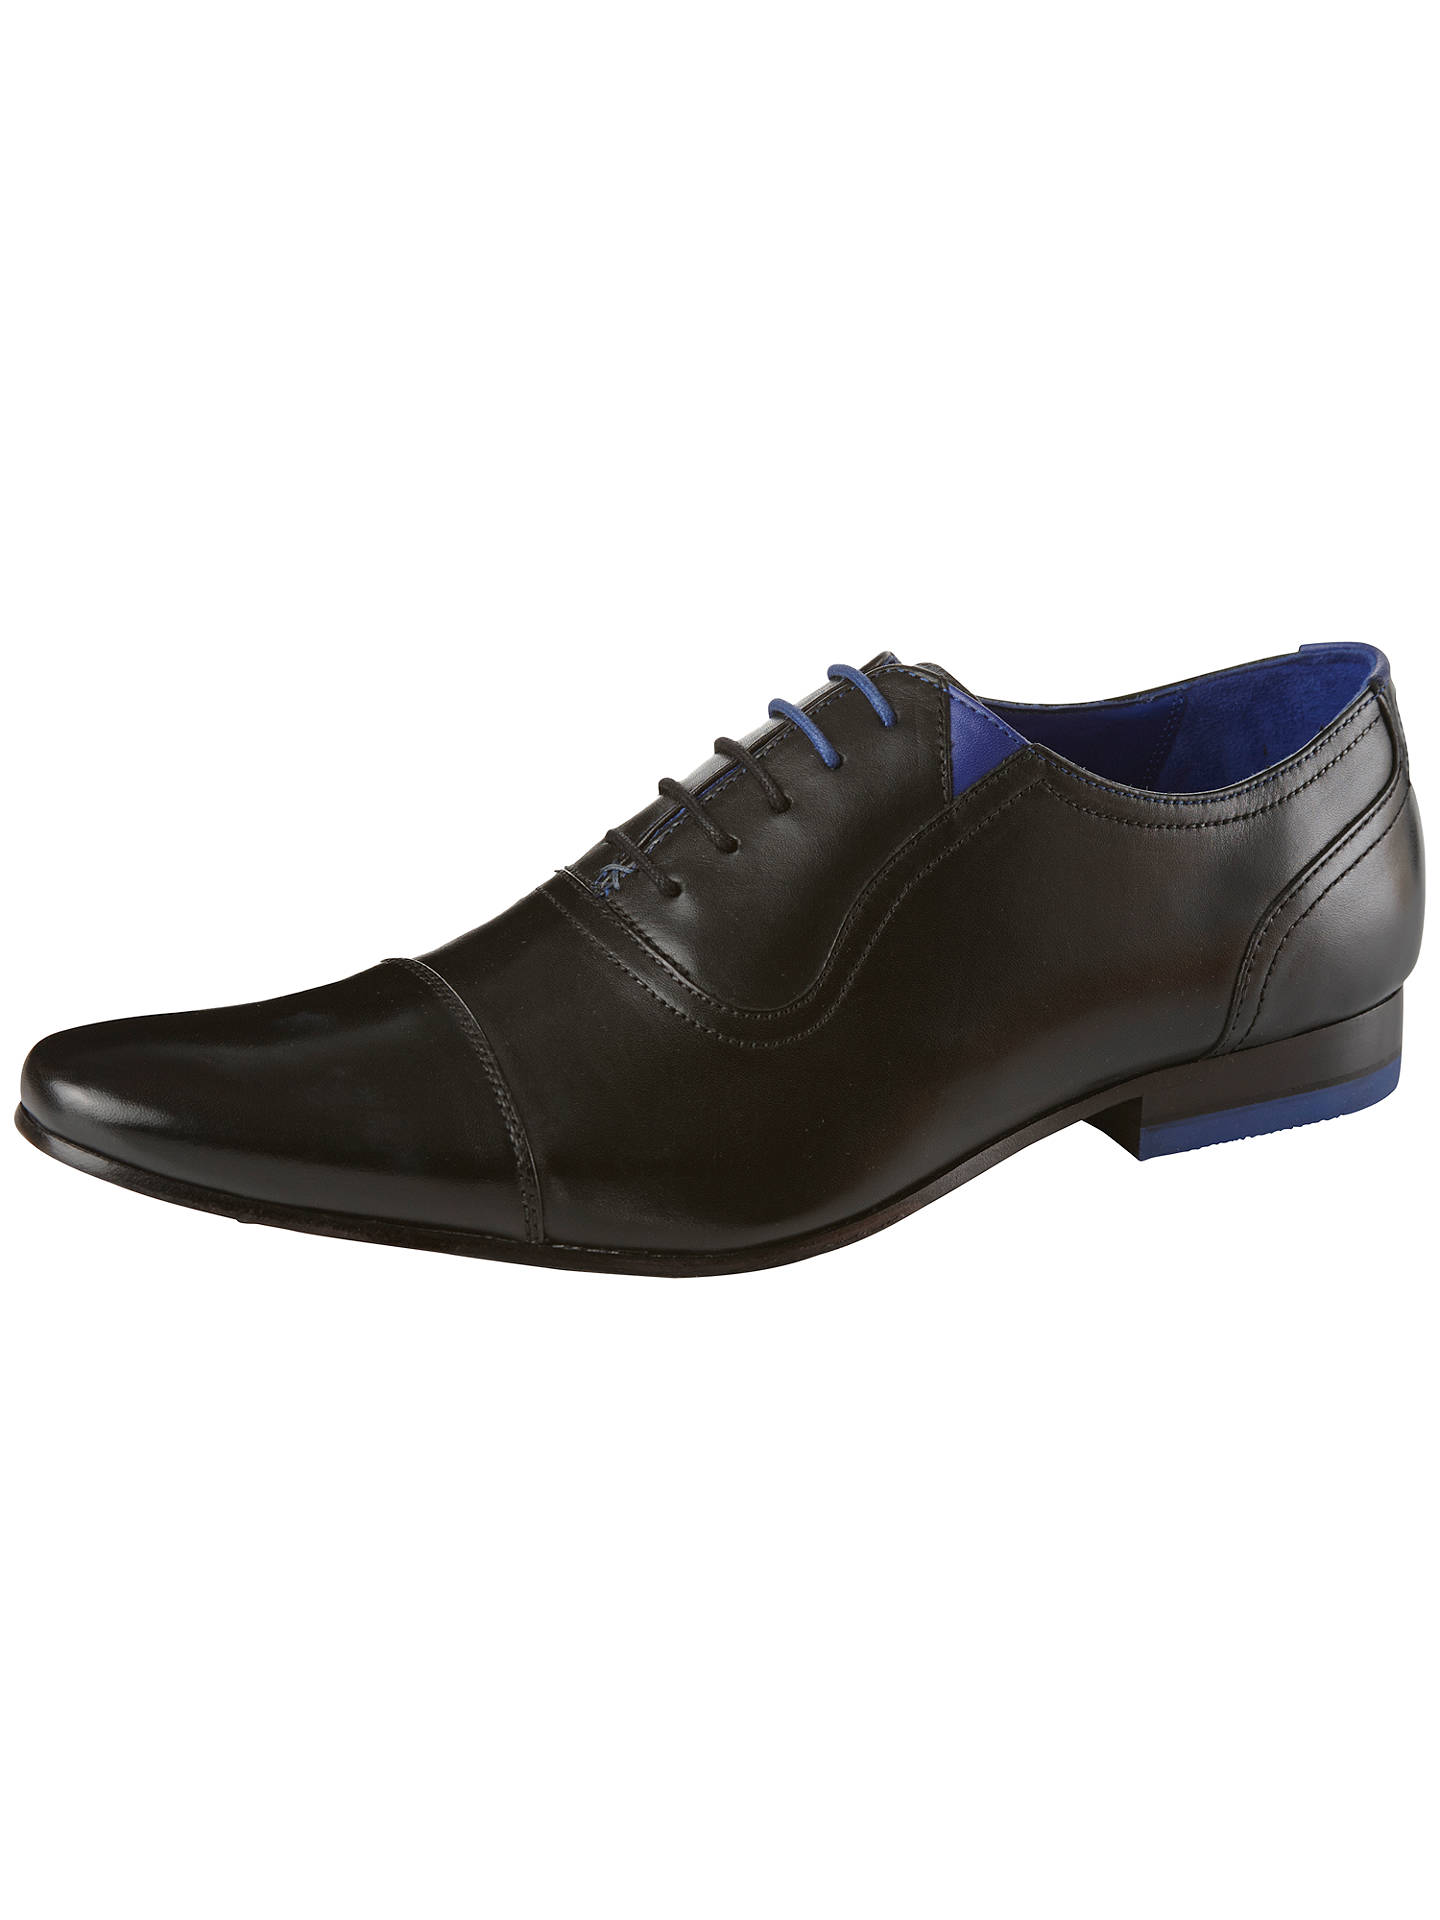 166d297087108 Ted Baker Rogrr Cap Toe Oxford Shoes at John Lewis   Partners